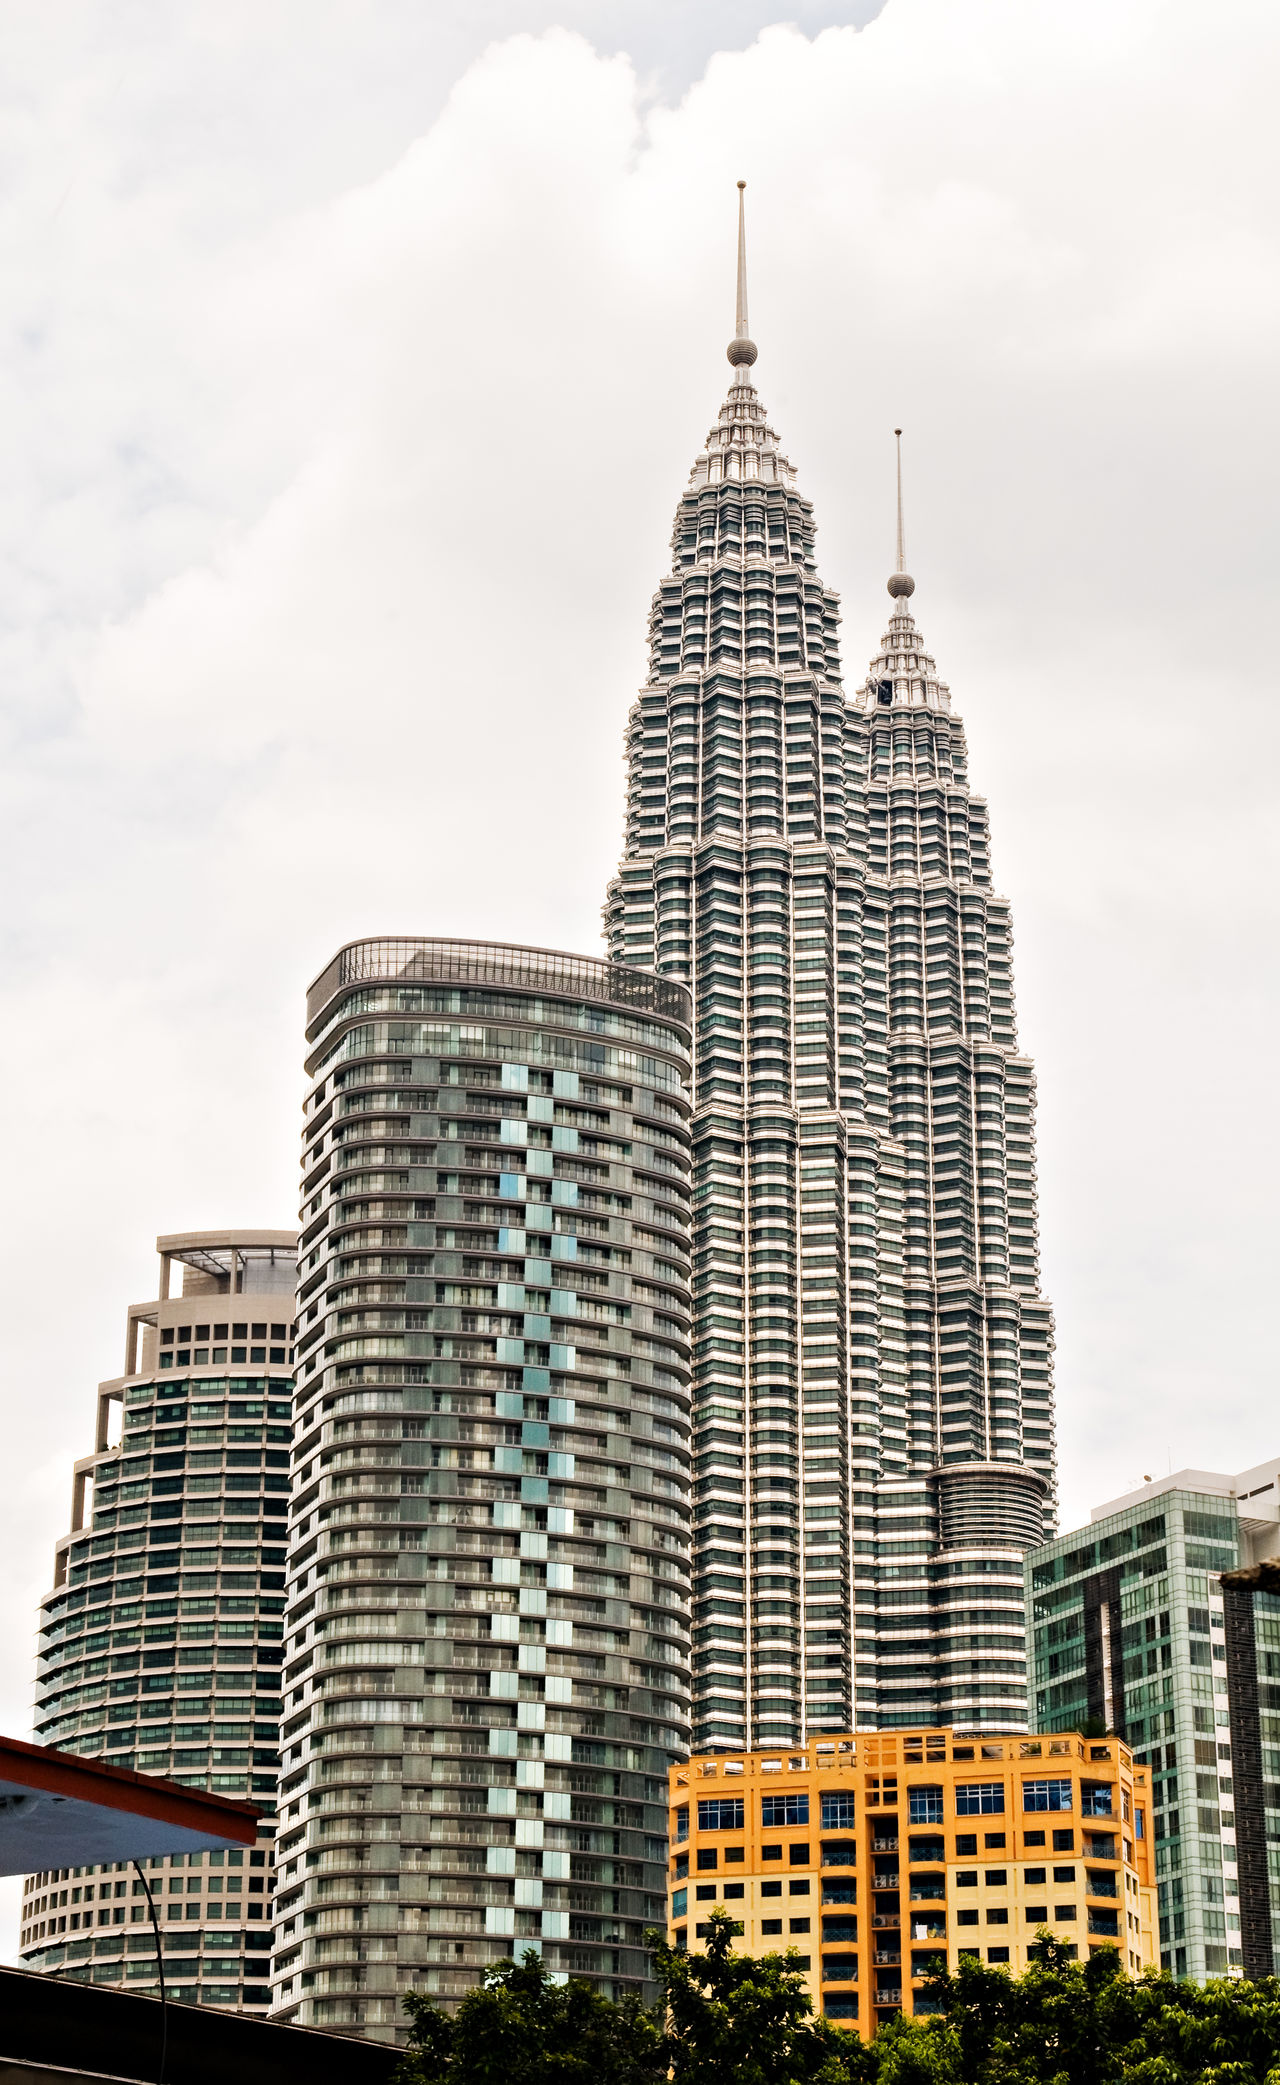 KLCC Petronas Twin Towers Architecture Building Exterior Built Structure City Cityscape Cloud - Sky Day Klcc KLCC Tower KLCC Twin Towers Low Angle View Modern No People Outdoors Petronas Twin Towers Sky Skyscraper Travel Destinations Urban Skyline